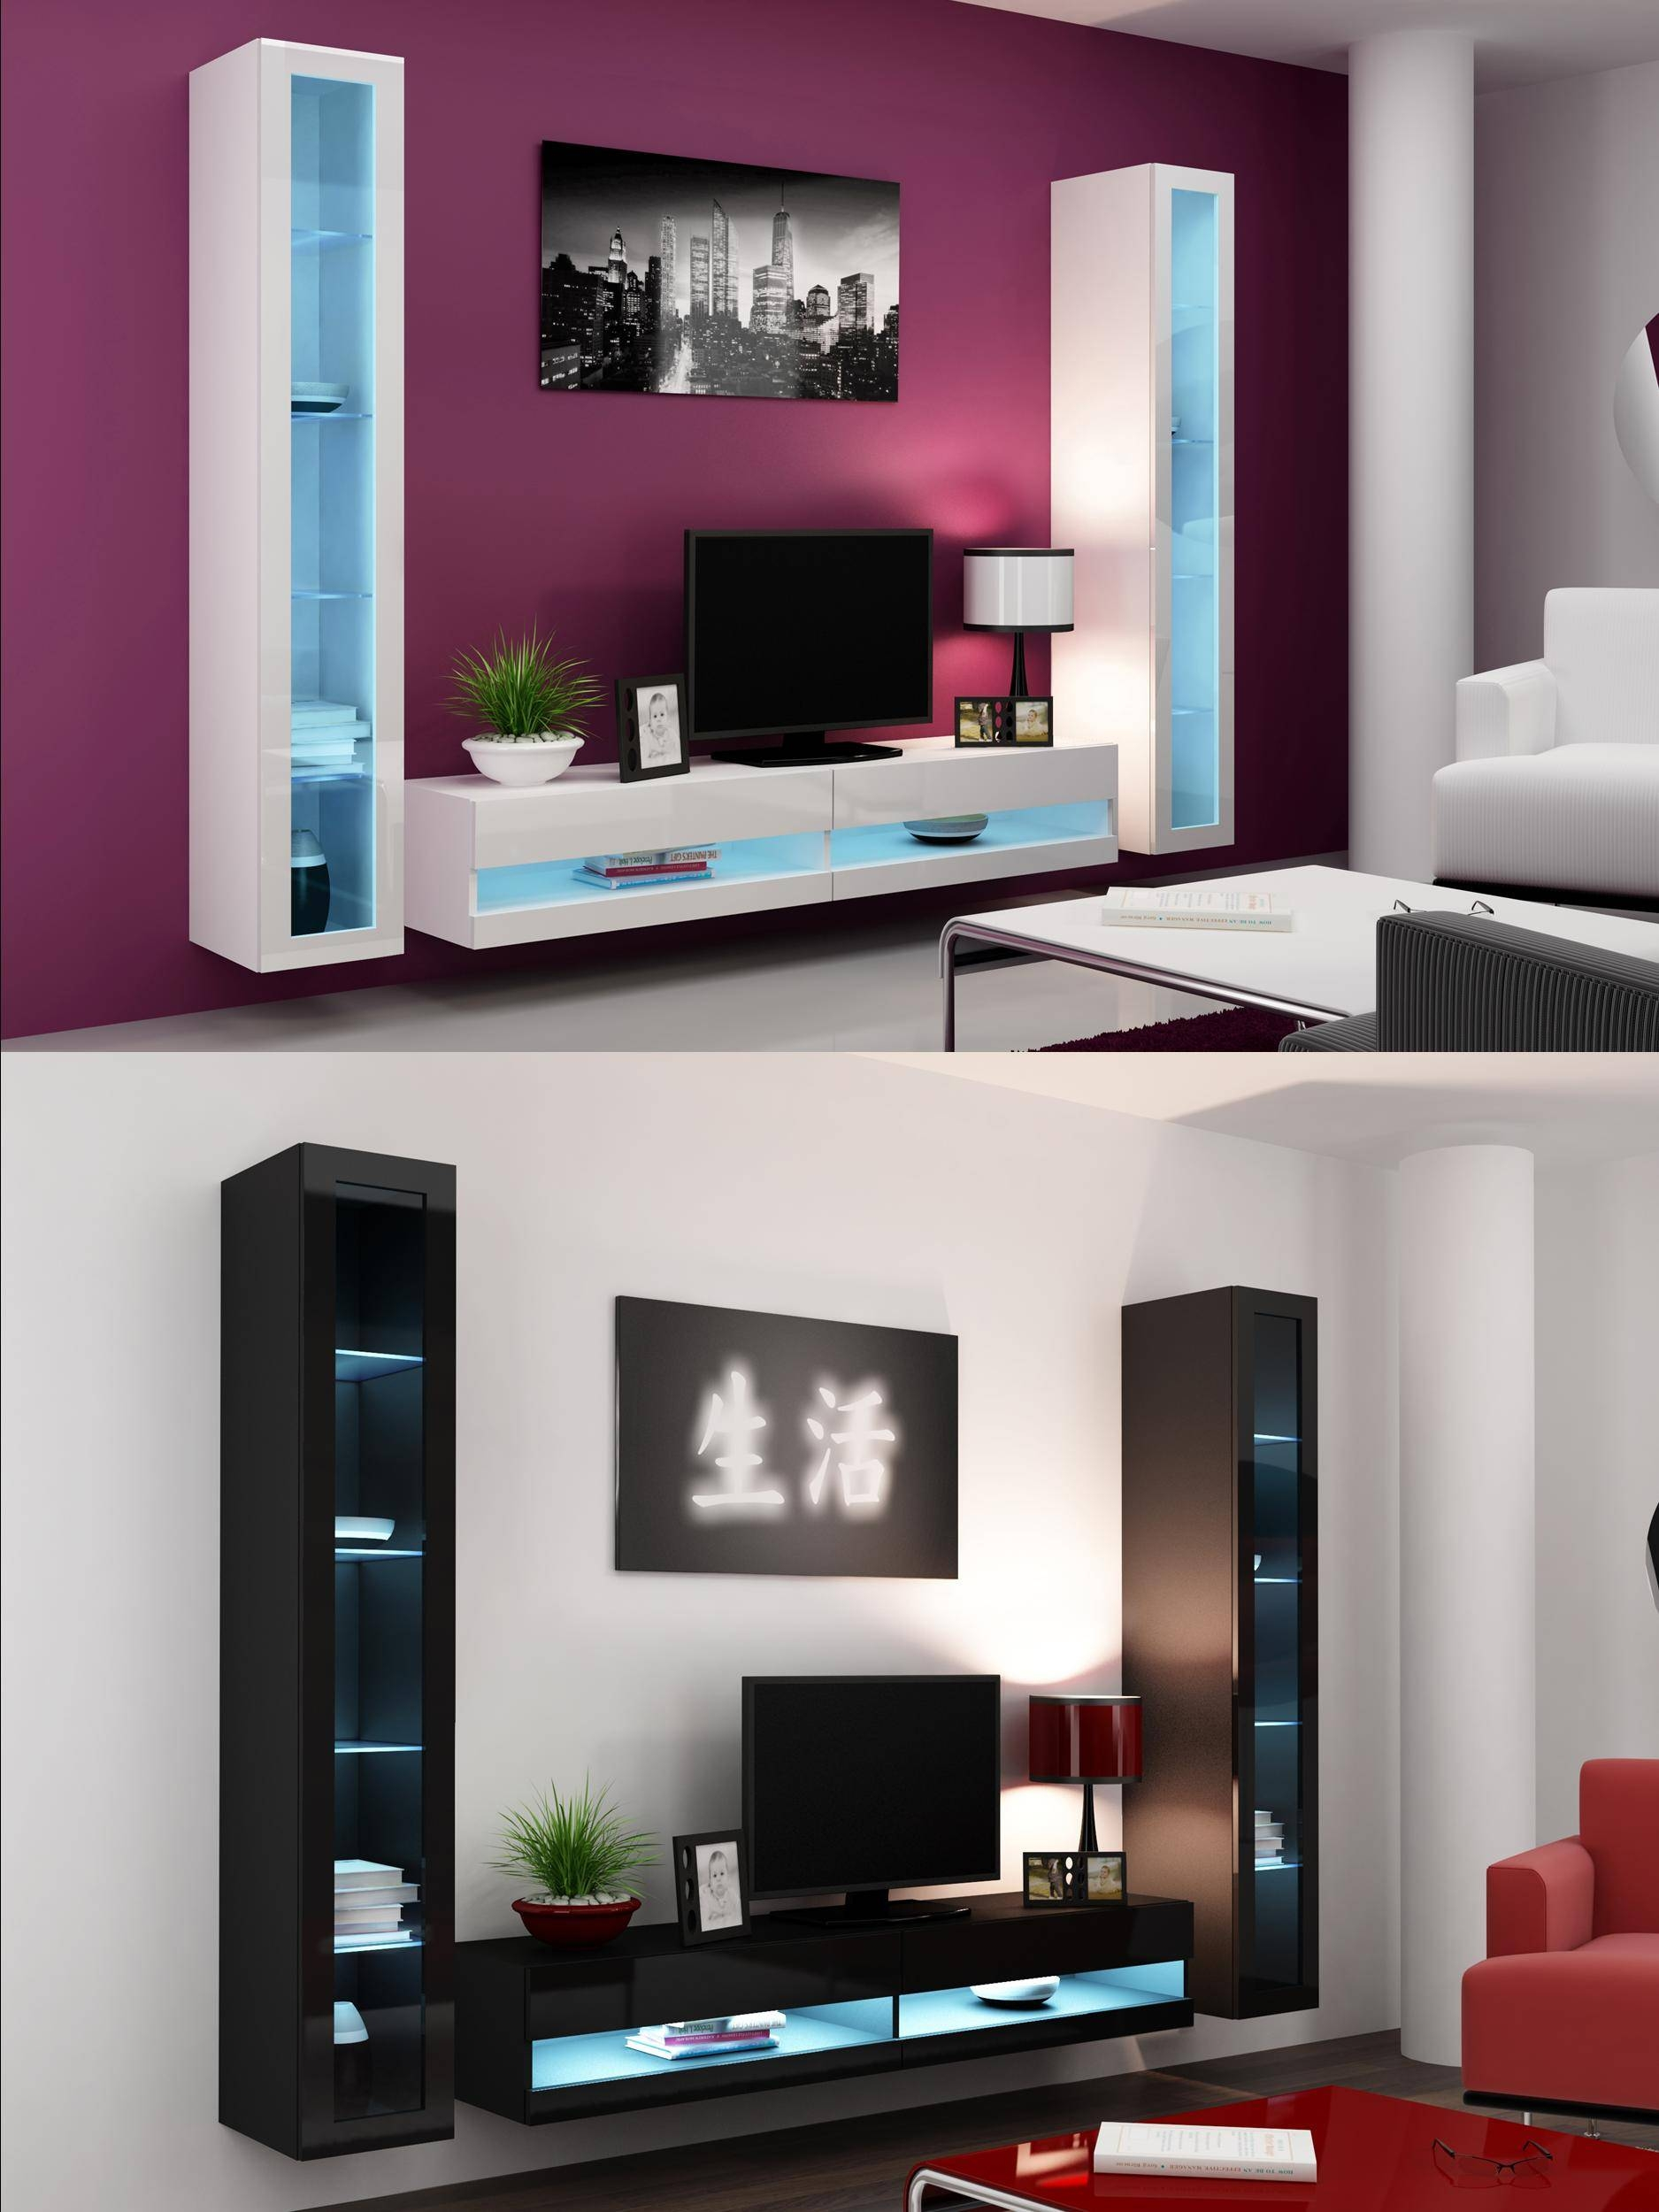 High Gloss Living Room Set With Led Lights, Tv Stand, Wall Mounted pertaining to Black Gloss Tv Wall Unit (Image 5 of 15)